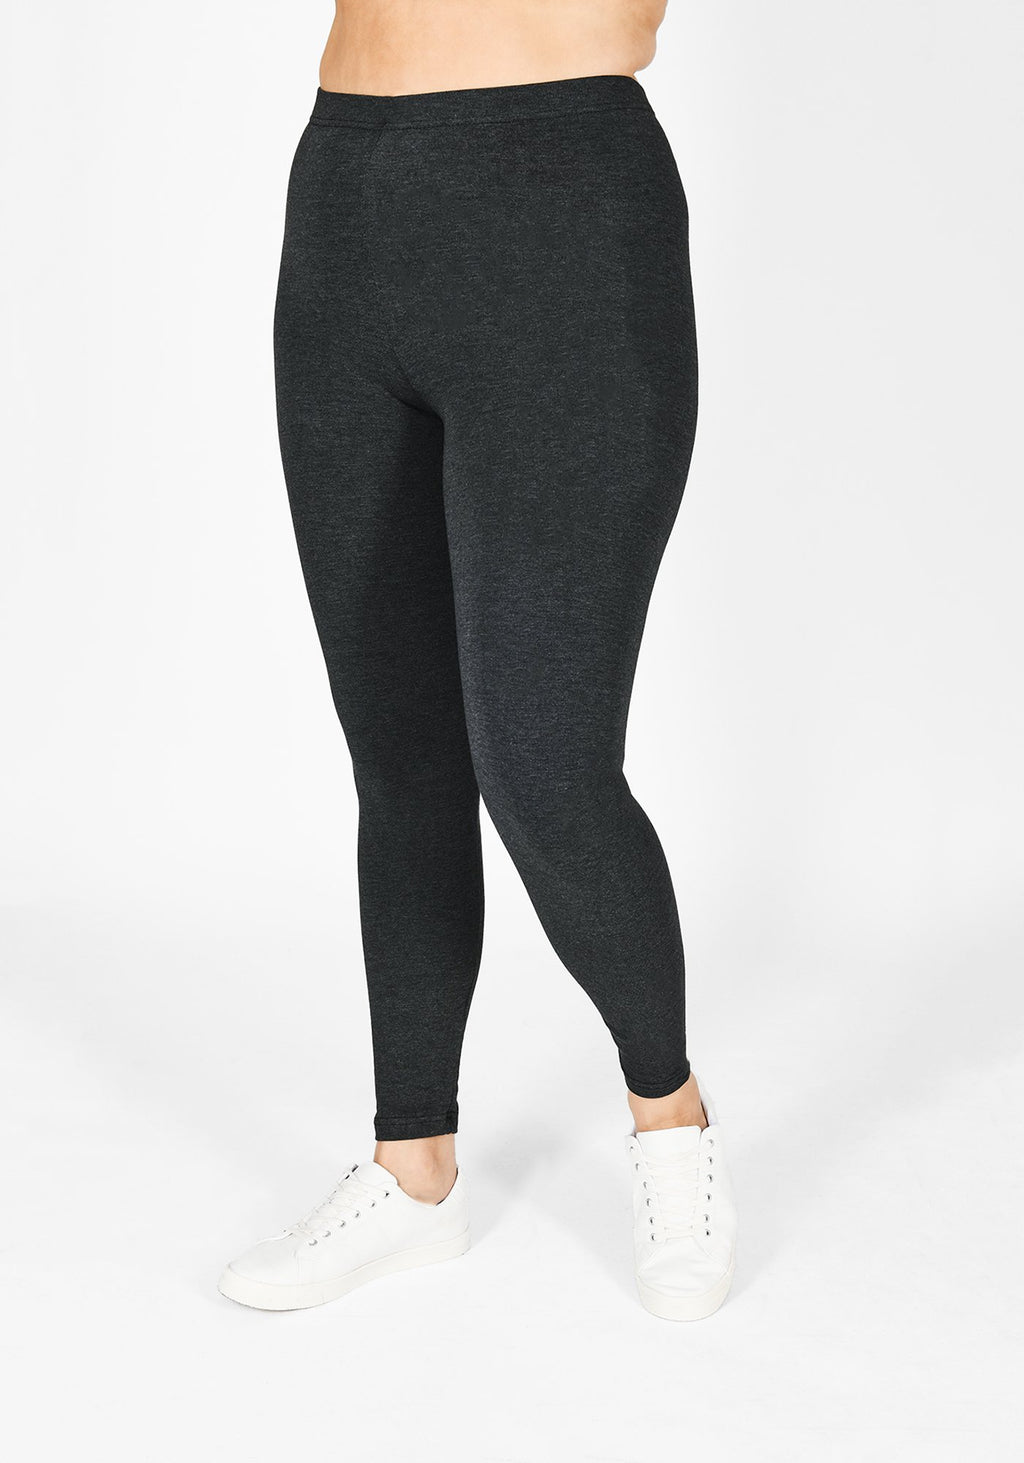 Classic Plus Size Dark Grey Marl Leggings 1